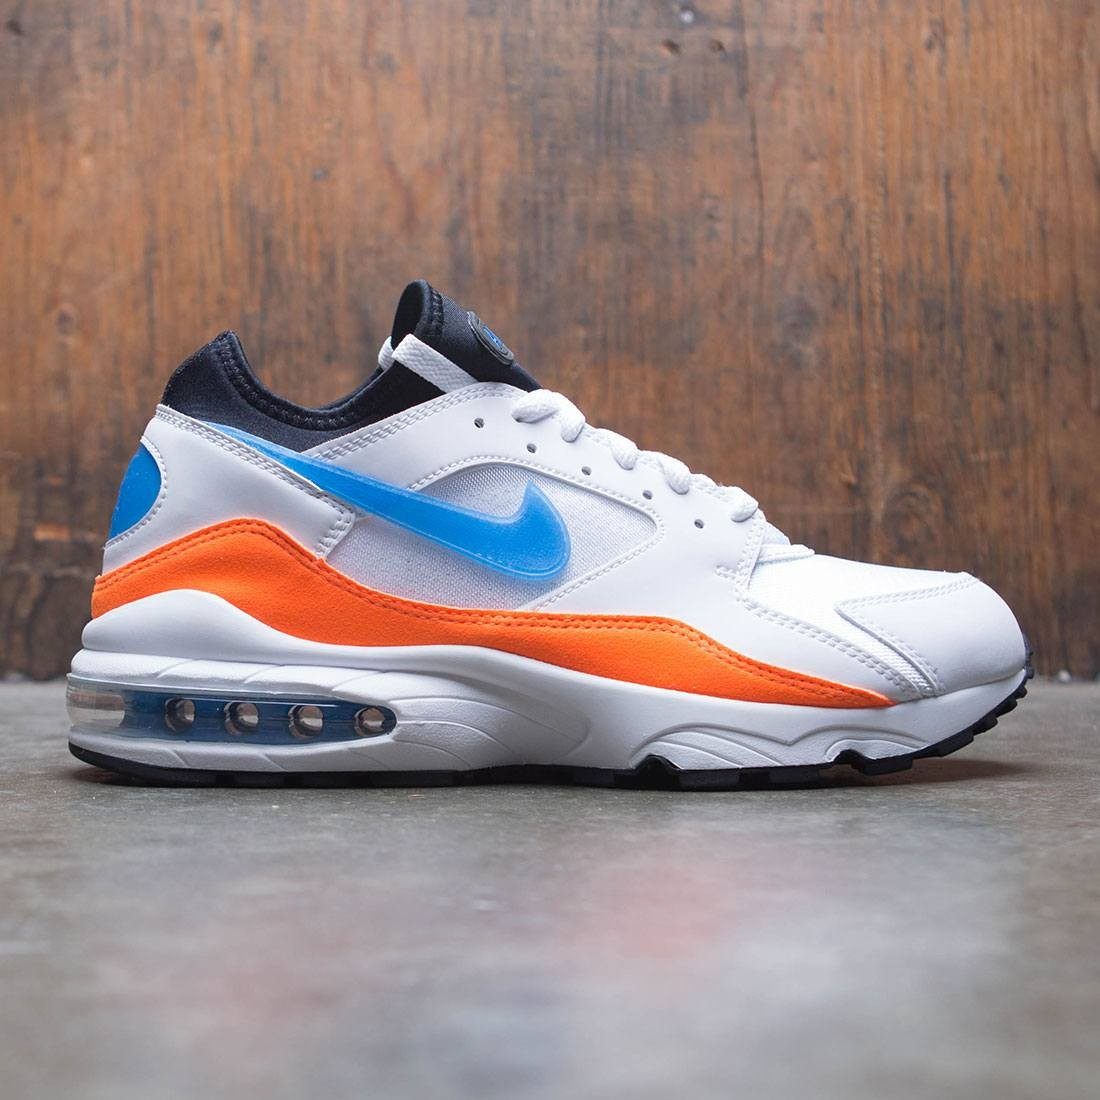 5d607390cba8 nike men air max  93 white blue nebula total orange black